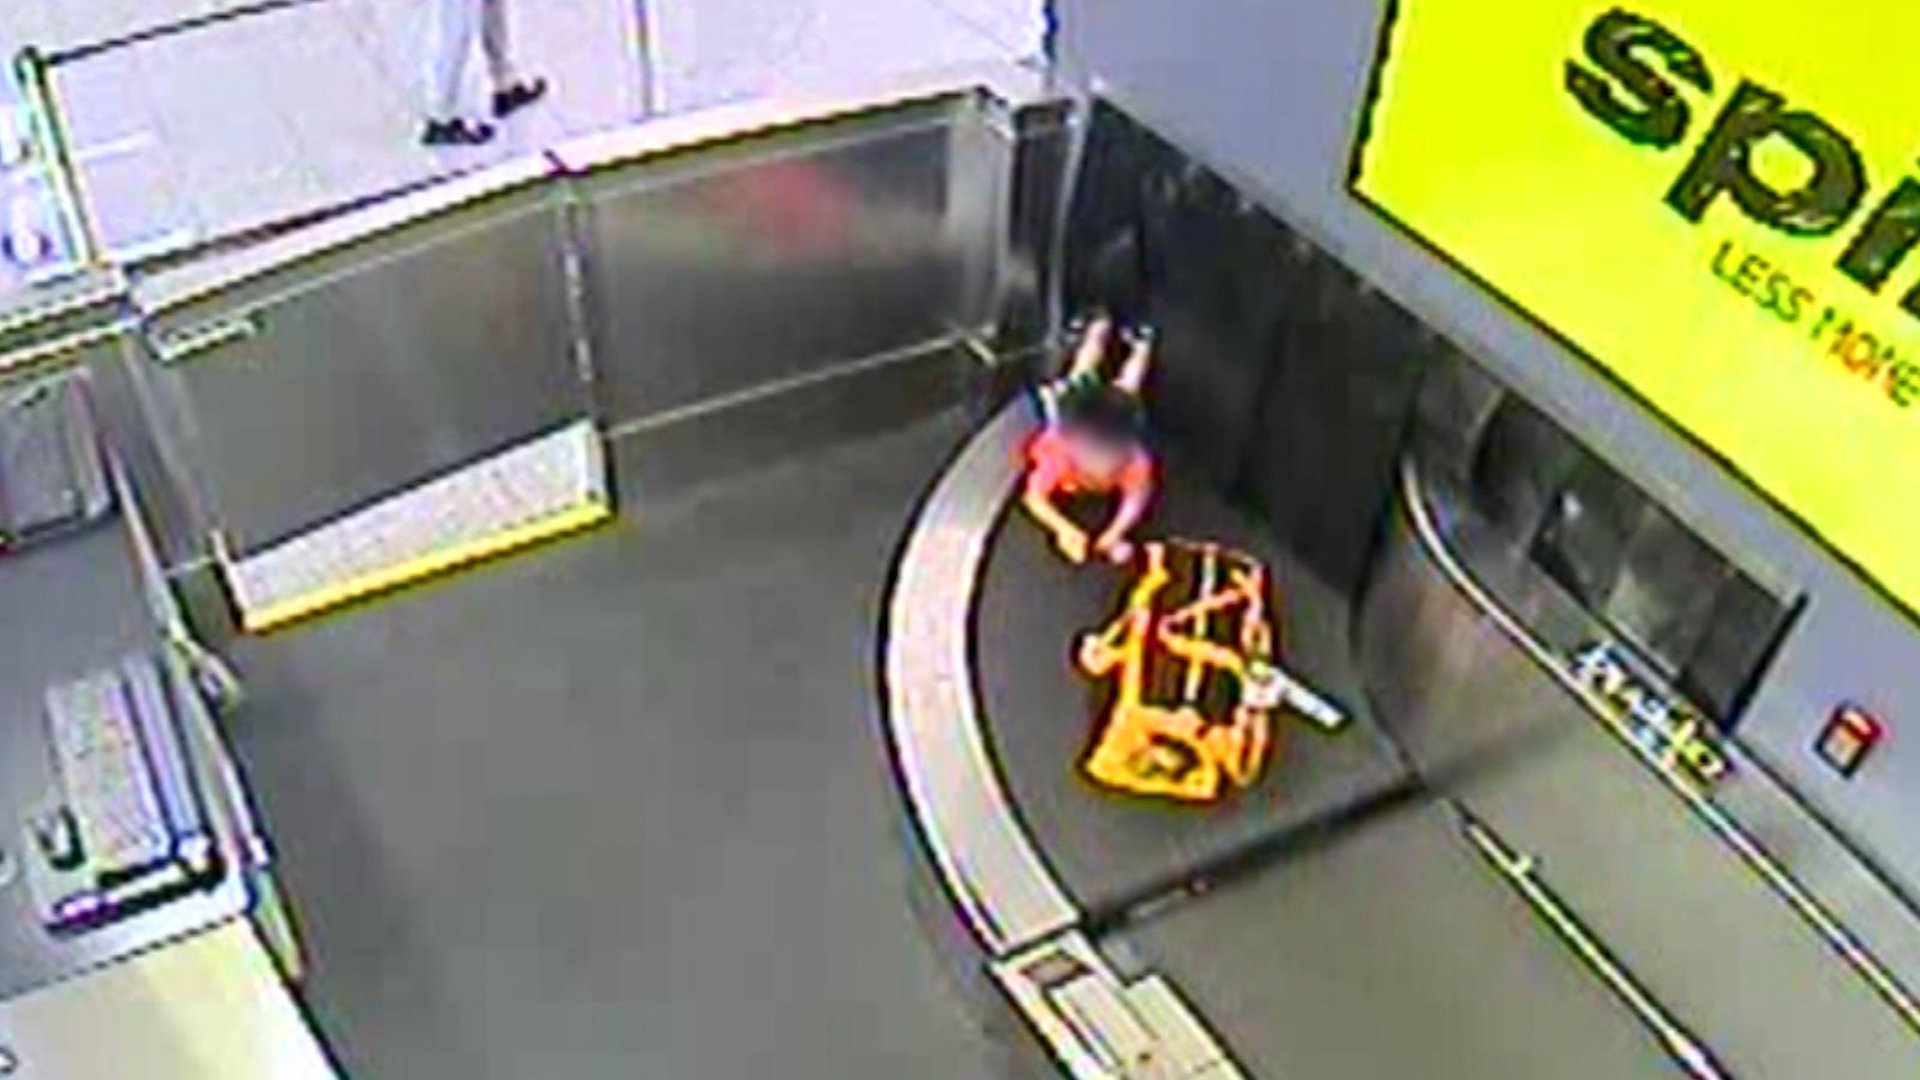 A toddler climbed onto a baggage conveyor belt behind a ticket counter at Atlanta's Hartsfield-Jackson airport. (Credit: Hartsfield-Jackson Atlanta Airport)